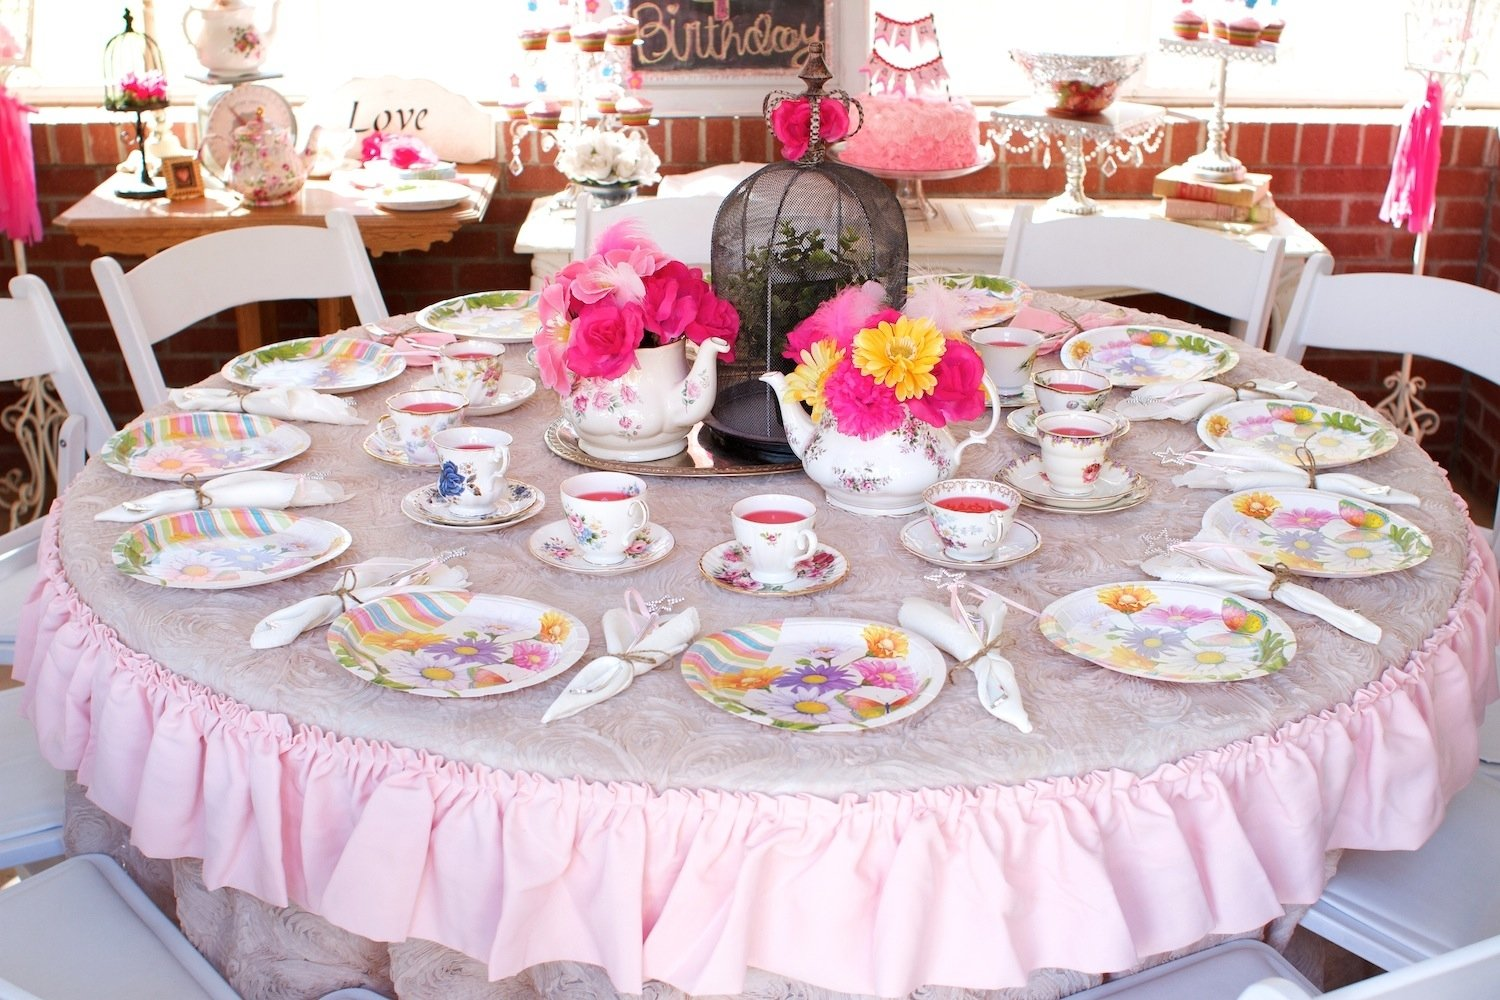 10 Stylish Princess Tea Party Birthday Ideas garden tea party classy clutter 4 2020